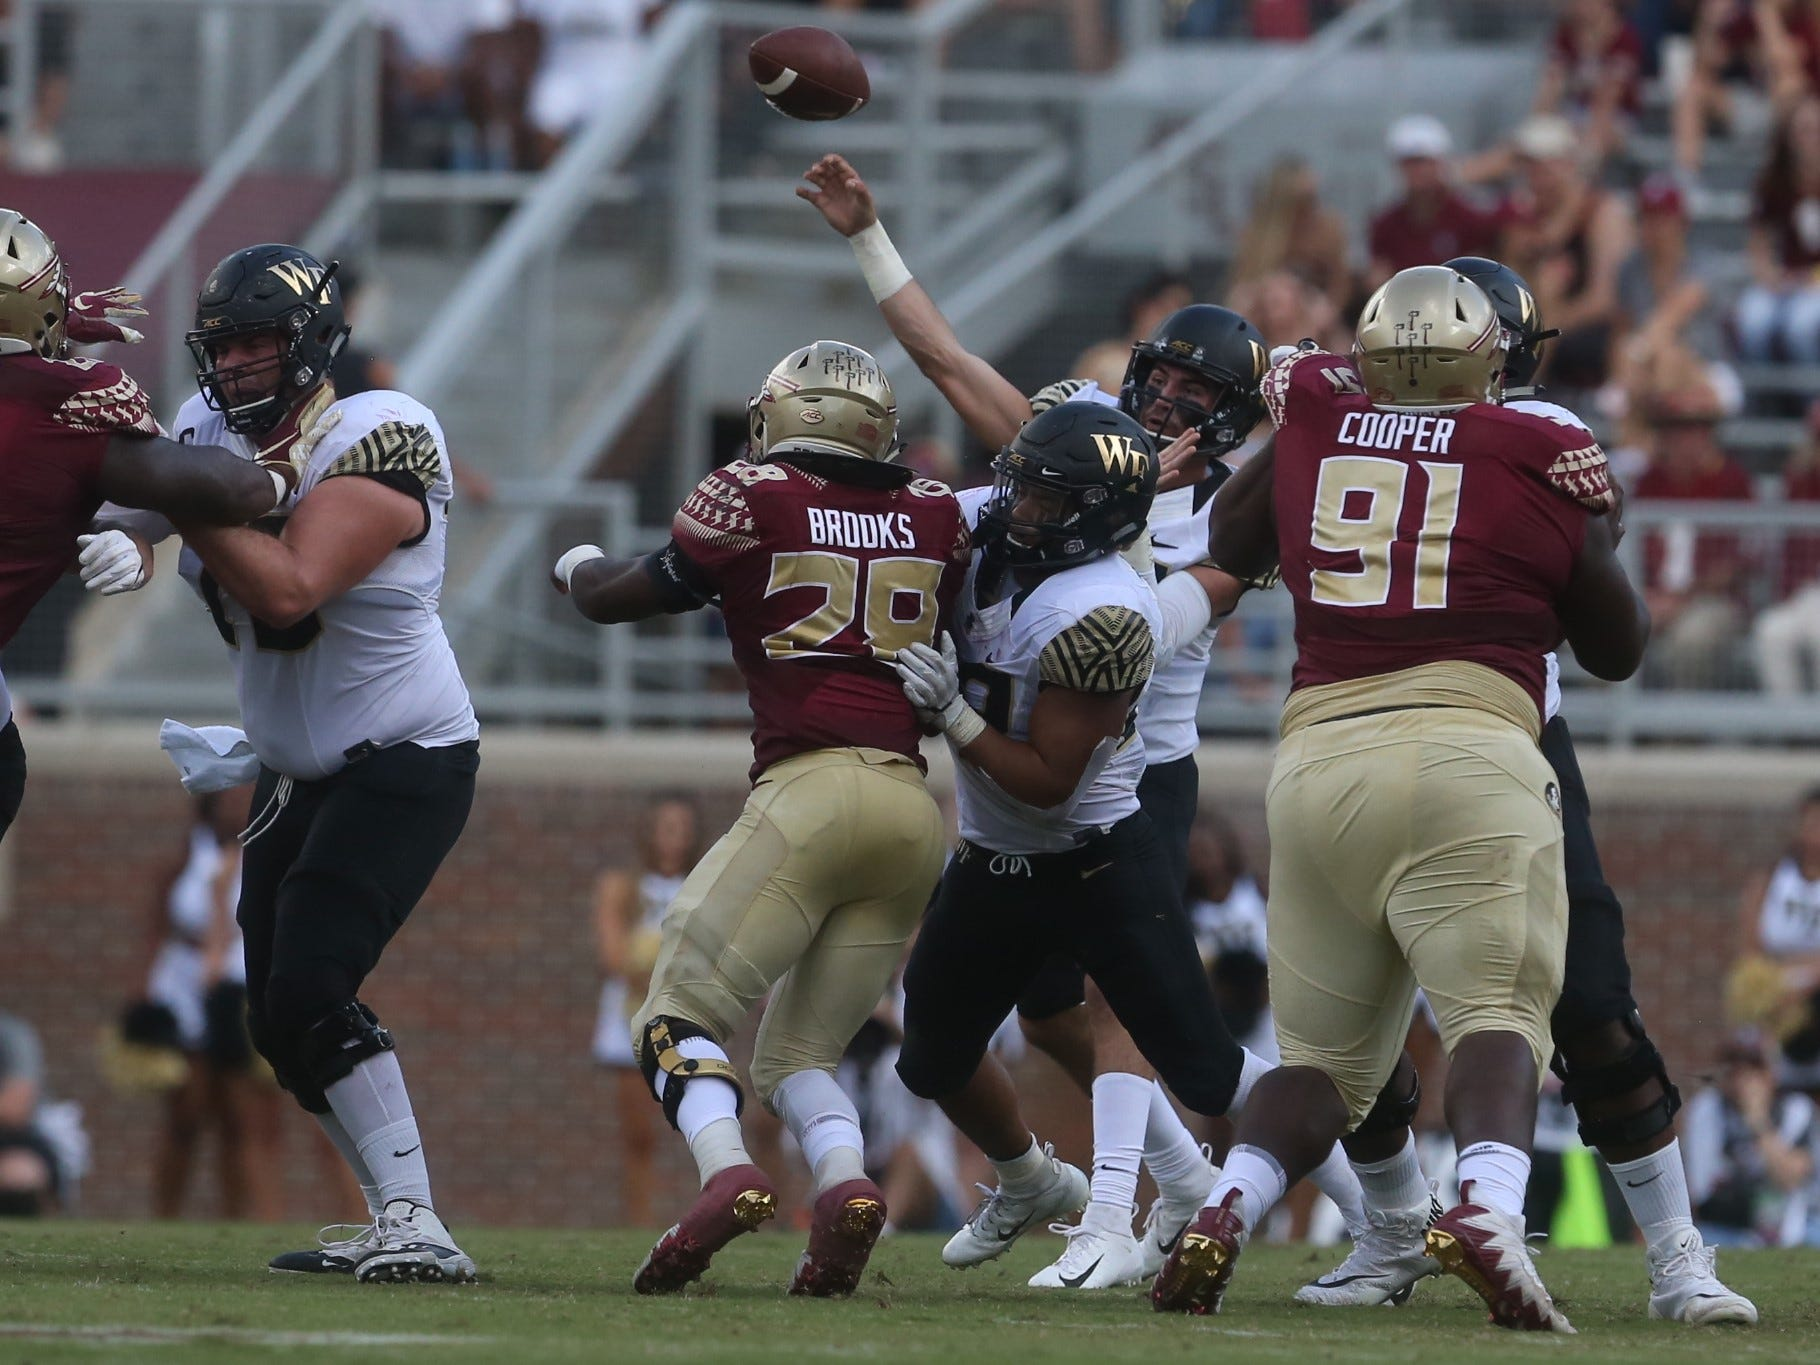 Wake Forest quarterback Sam Hartman throws a pass downfield as Florida State tries to get a pass rush during a game at Doak Campbell Stadium on Saturday, Oct. 20, 2018.